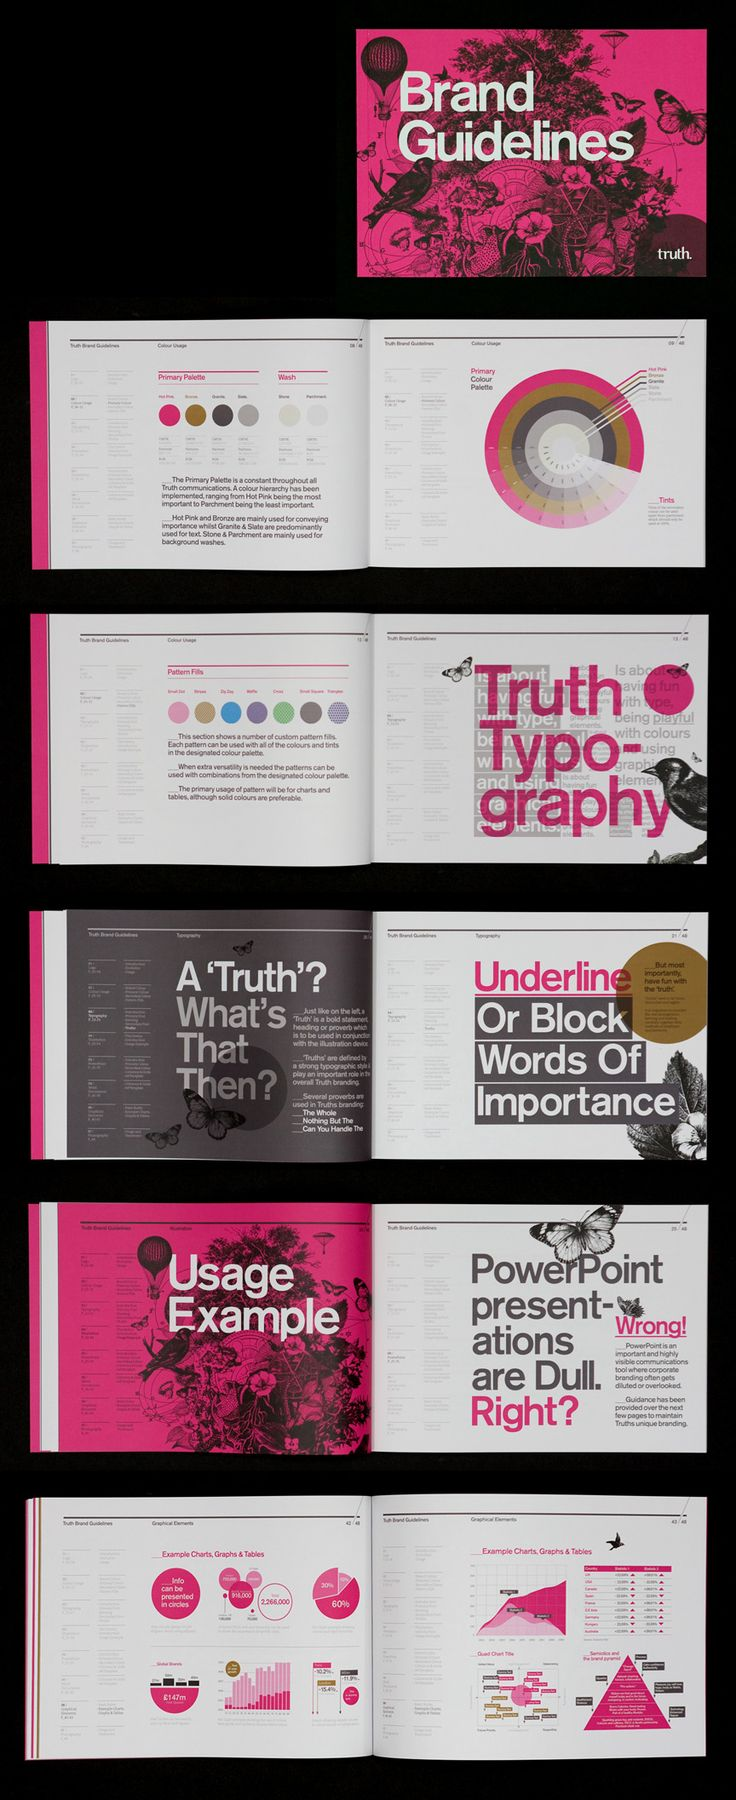 Truth Brand Guidelines [Designer - Mash Creative] Although these are brand guidelines, I am attracted to some of the typography formatting used as well as the colour pallet.